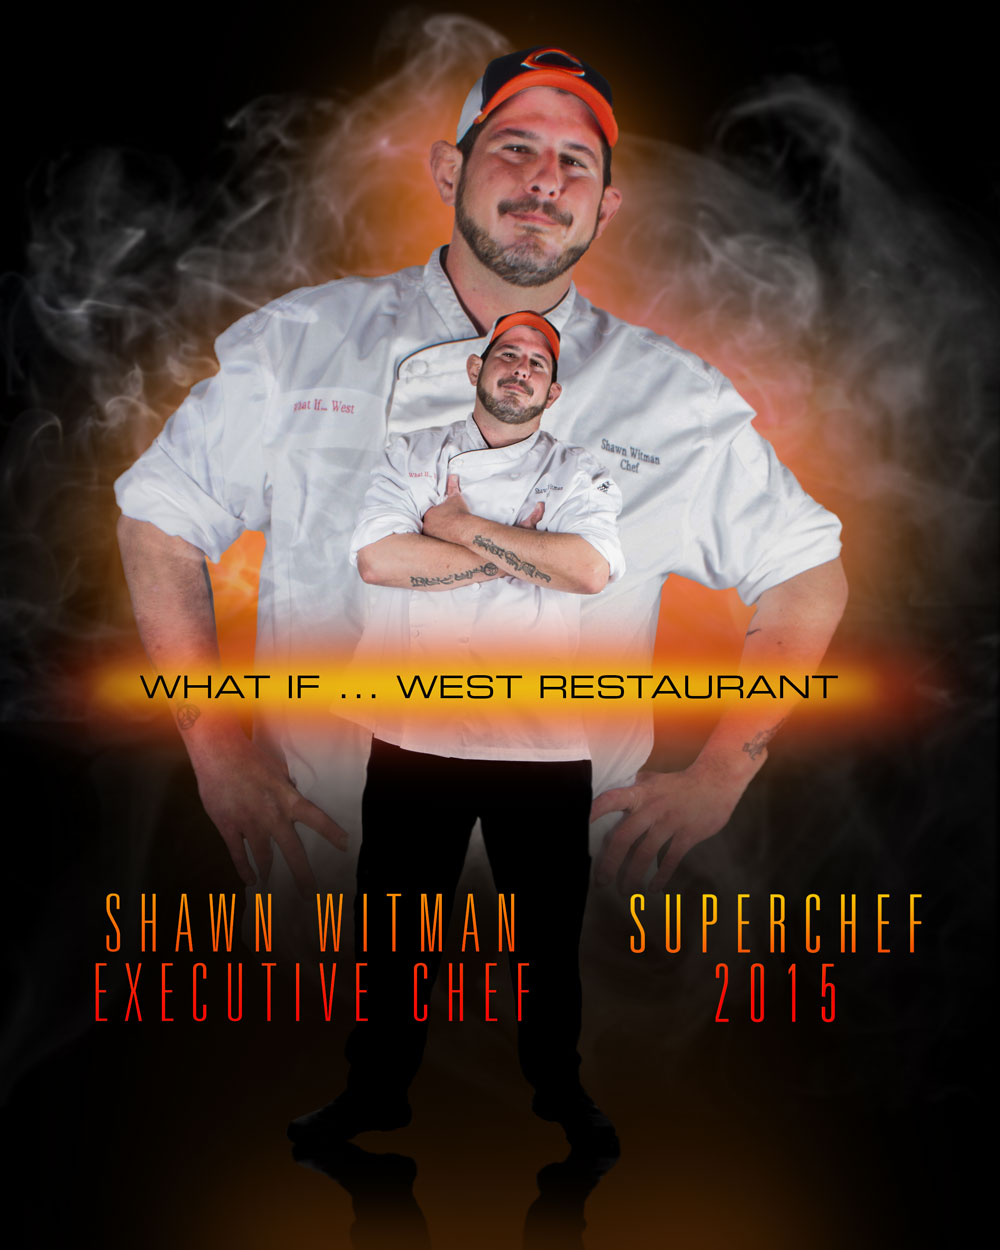 Shawn Witman, Executive Chef, What If…West Restaurant